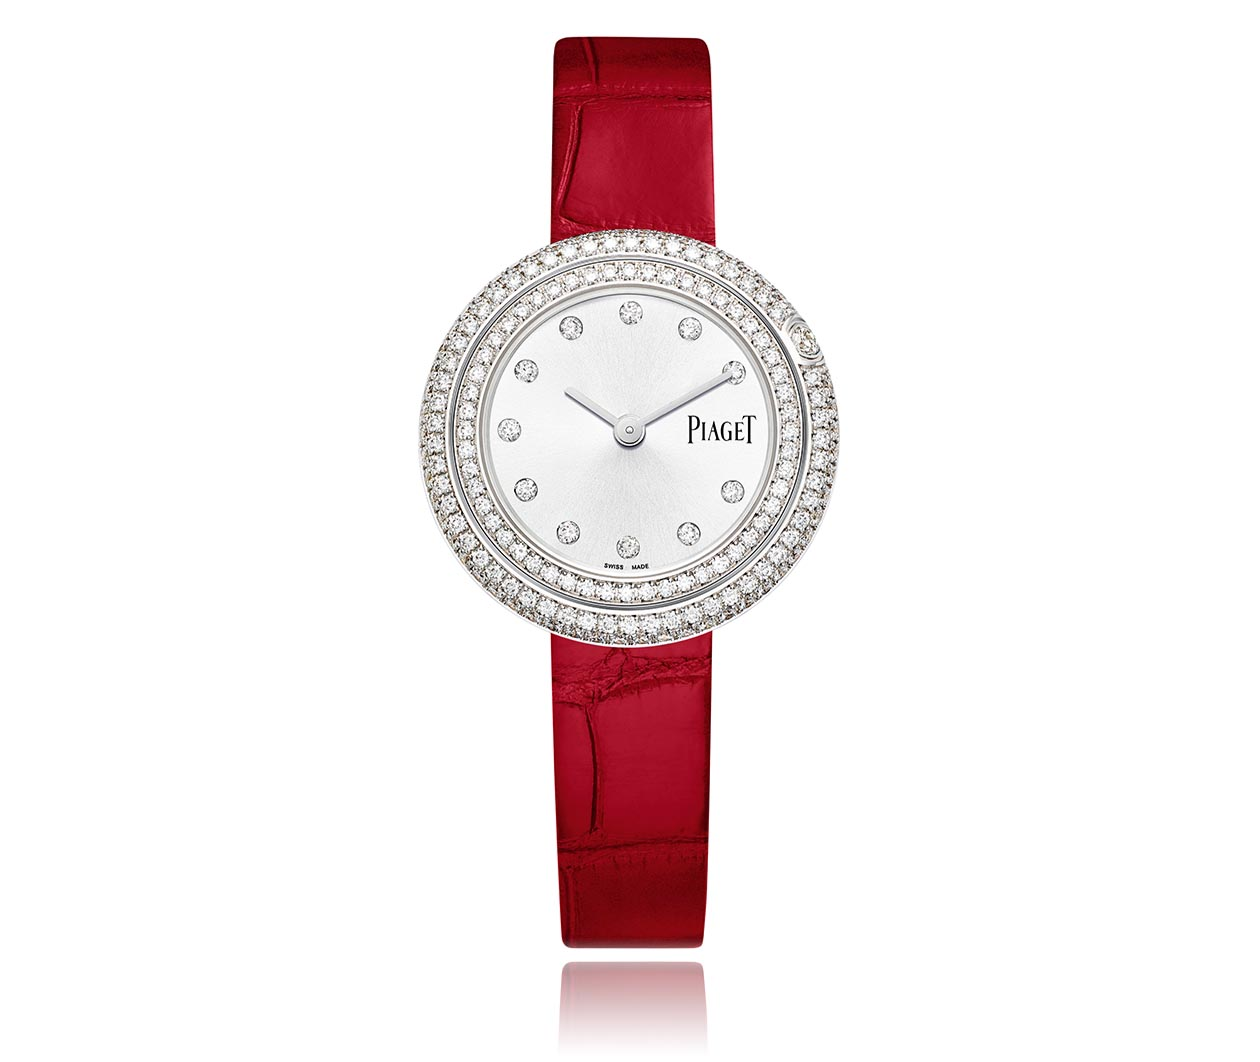 Piaget Possession watch G0A43085 Carousel 1 FINAL